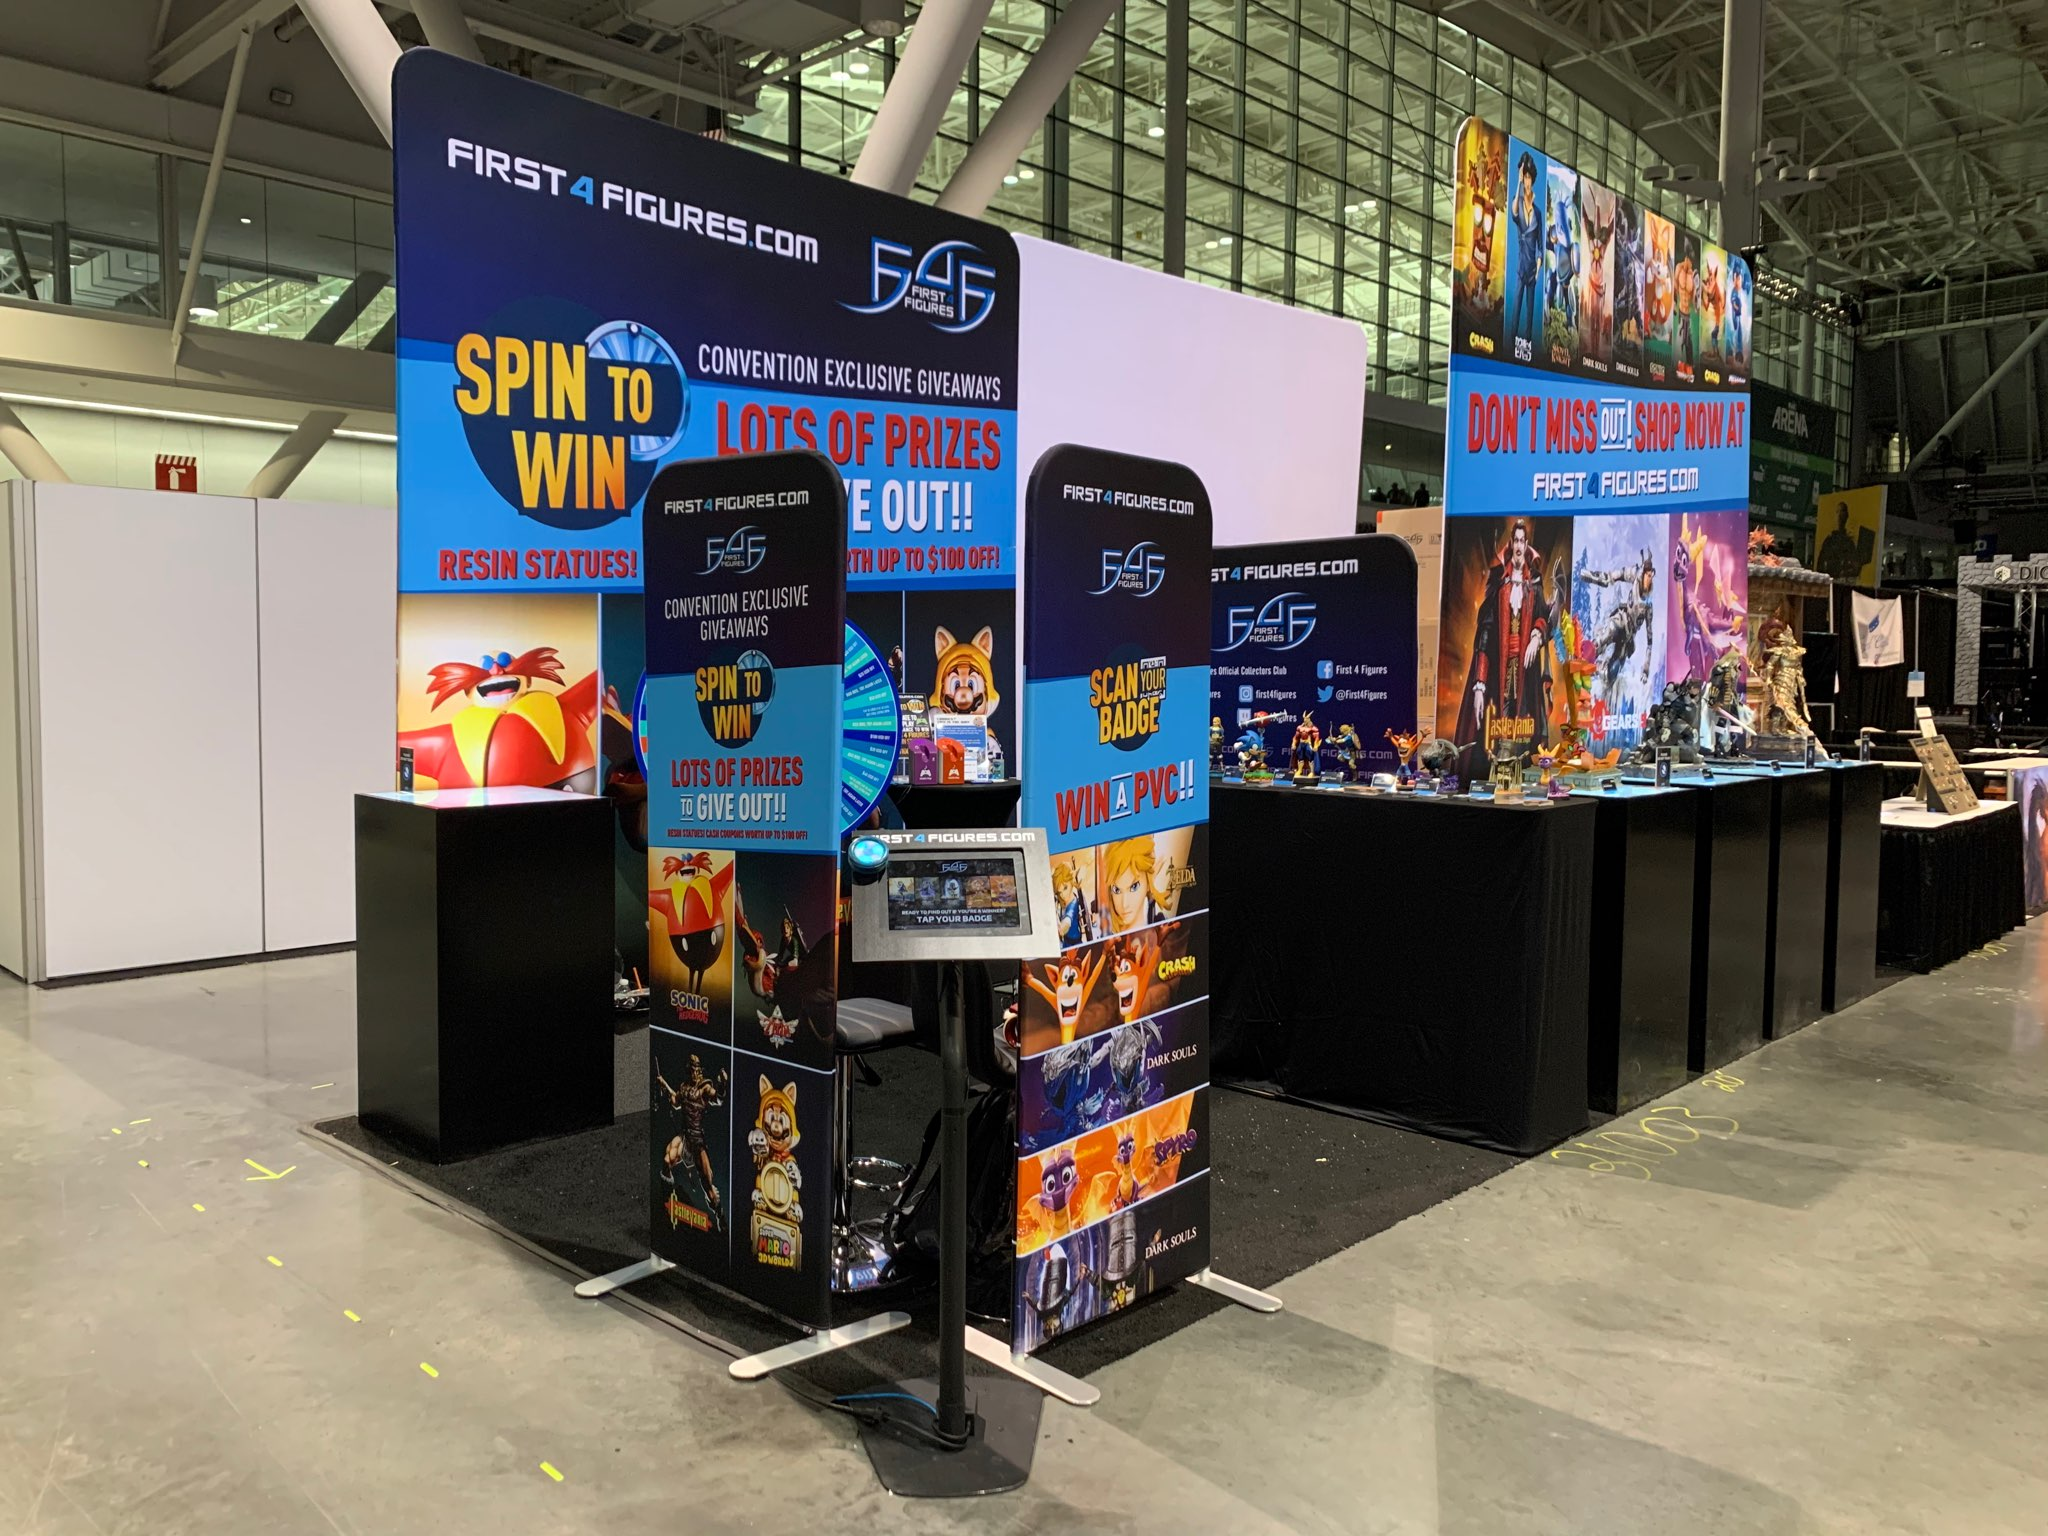 First 4 Figures booth setup @ PAX East 2020